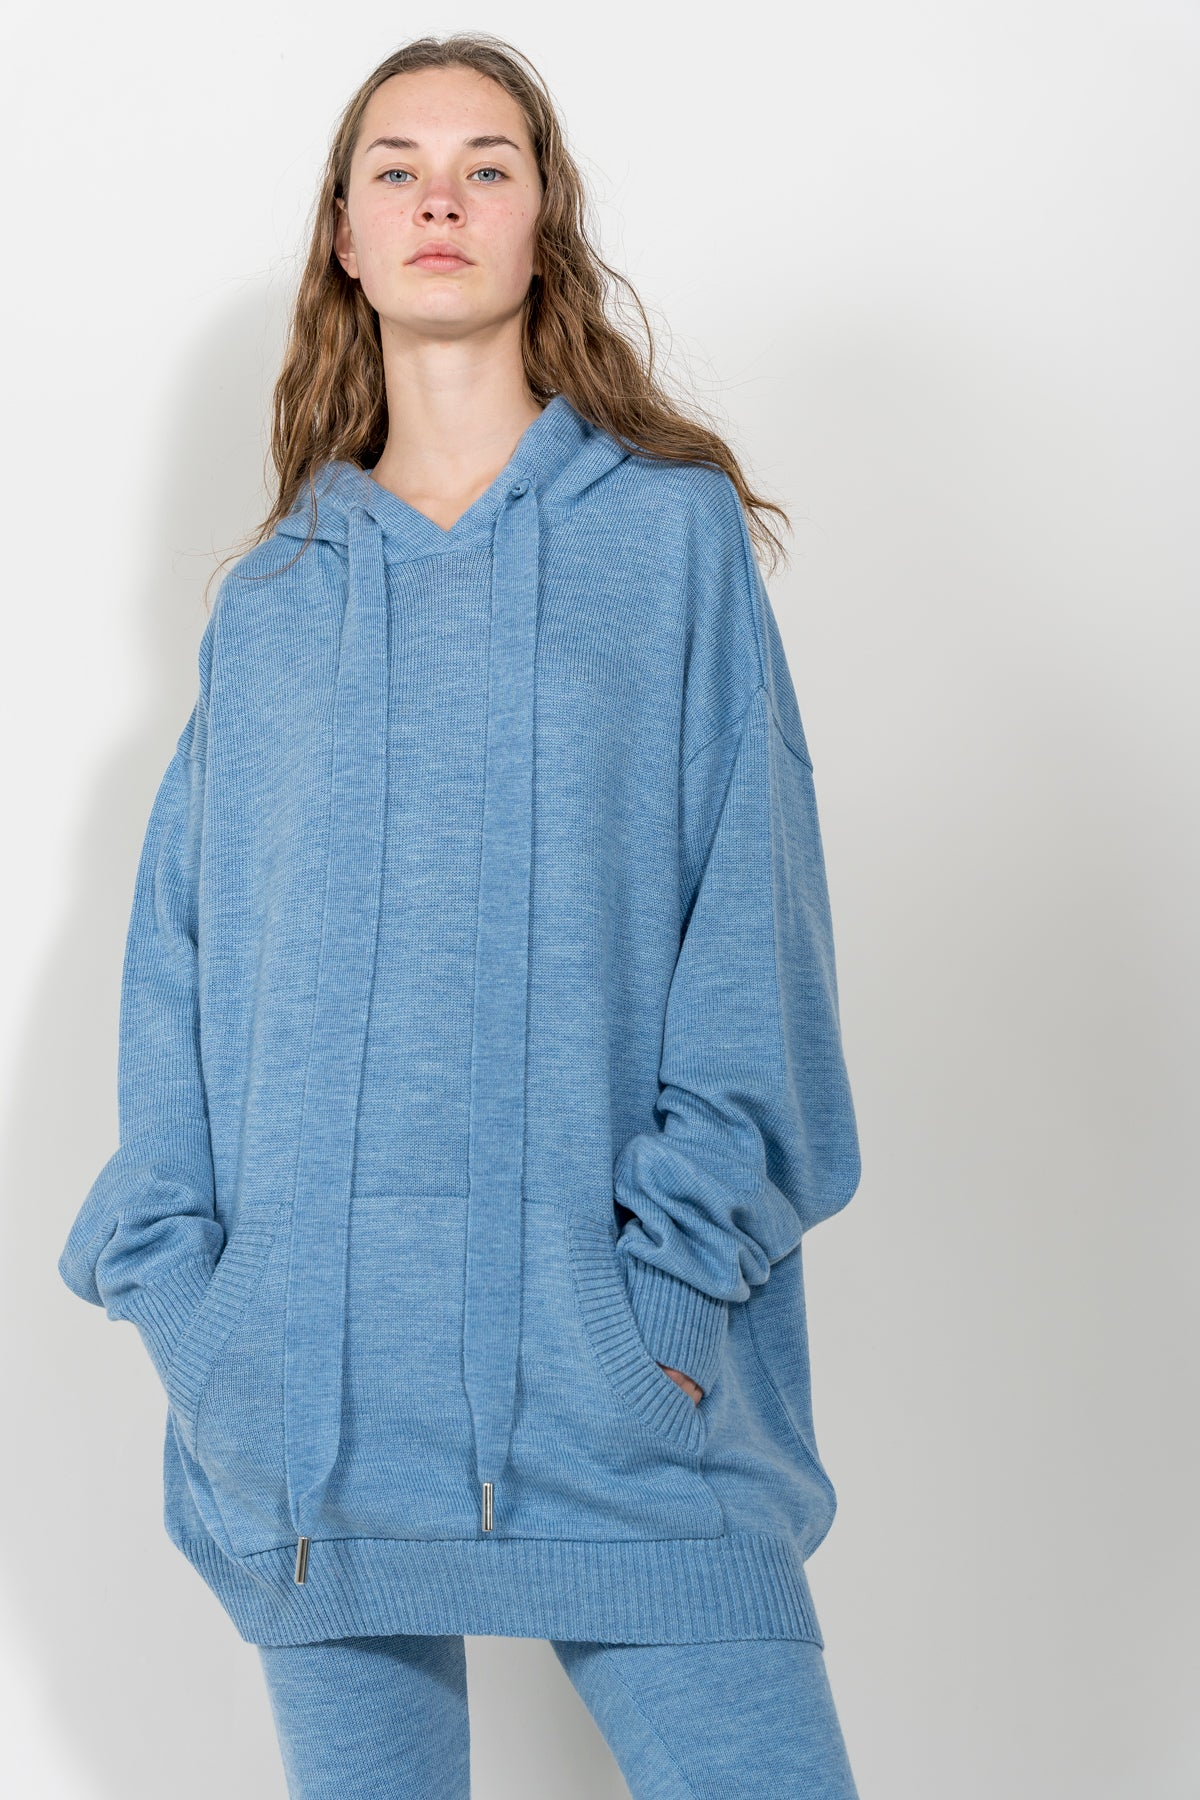 LIGHT BLUE TRACKSUIT JUMPER